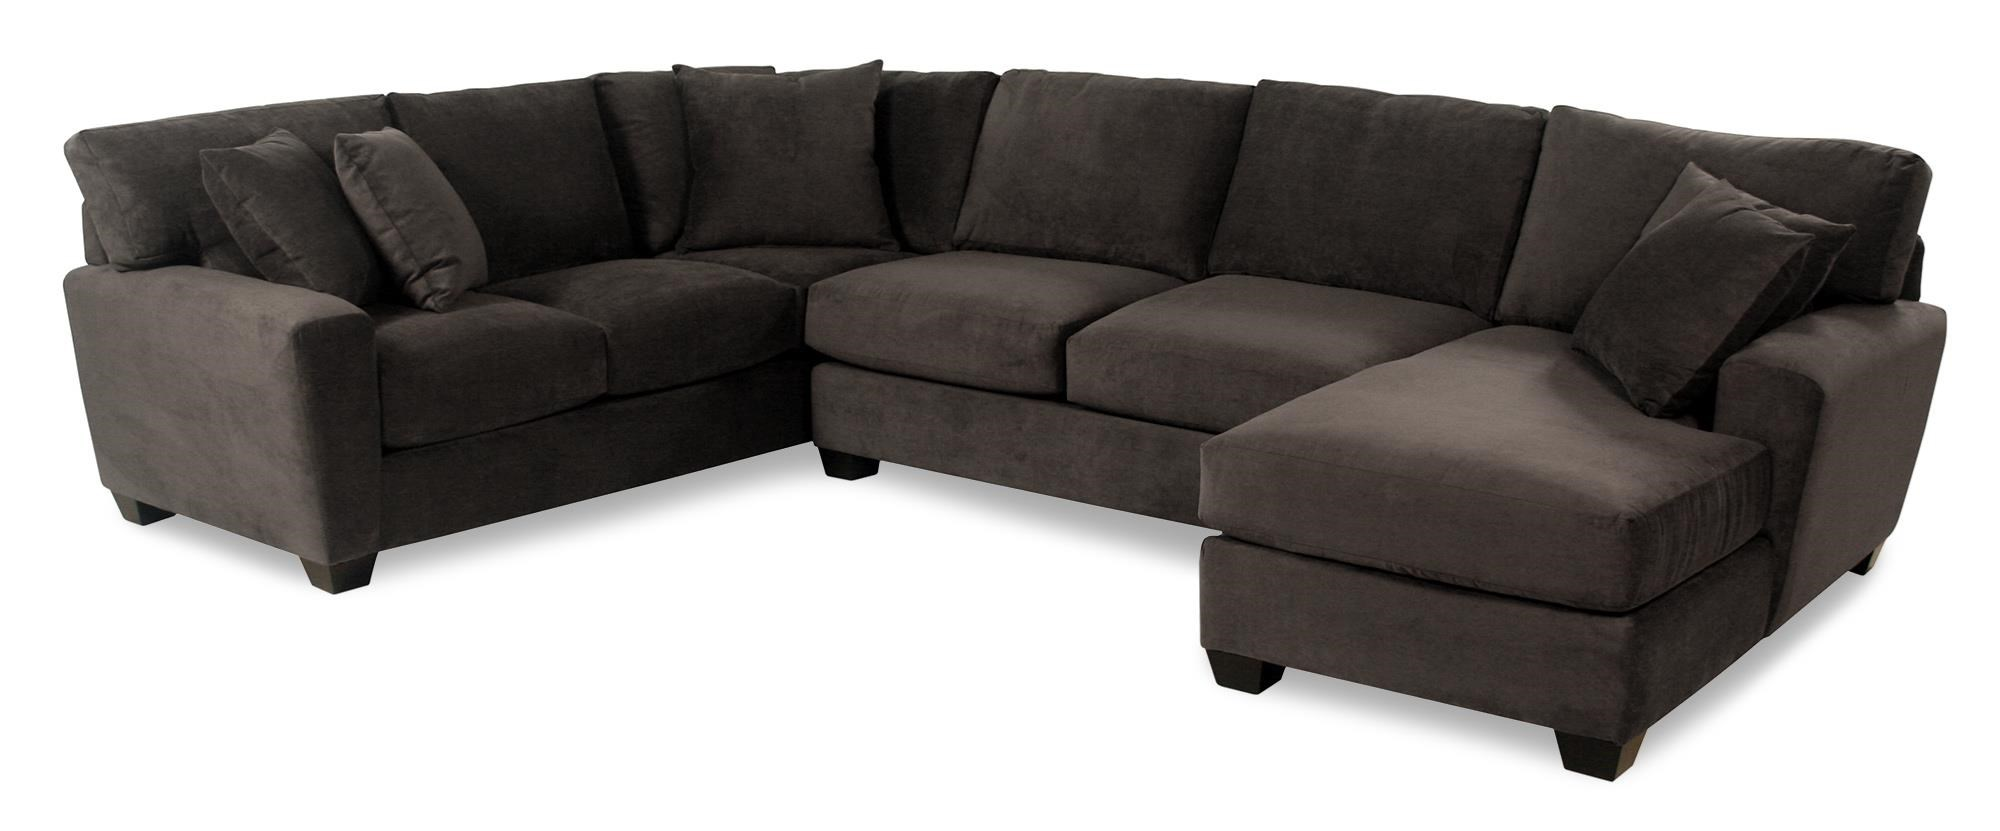 Cisco Dolan  L-Shape Sectional with Chaise - Item Number: 05832L+05803+0582R-GYPSYFLANNEL